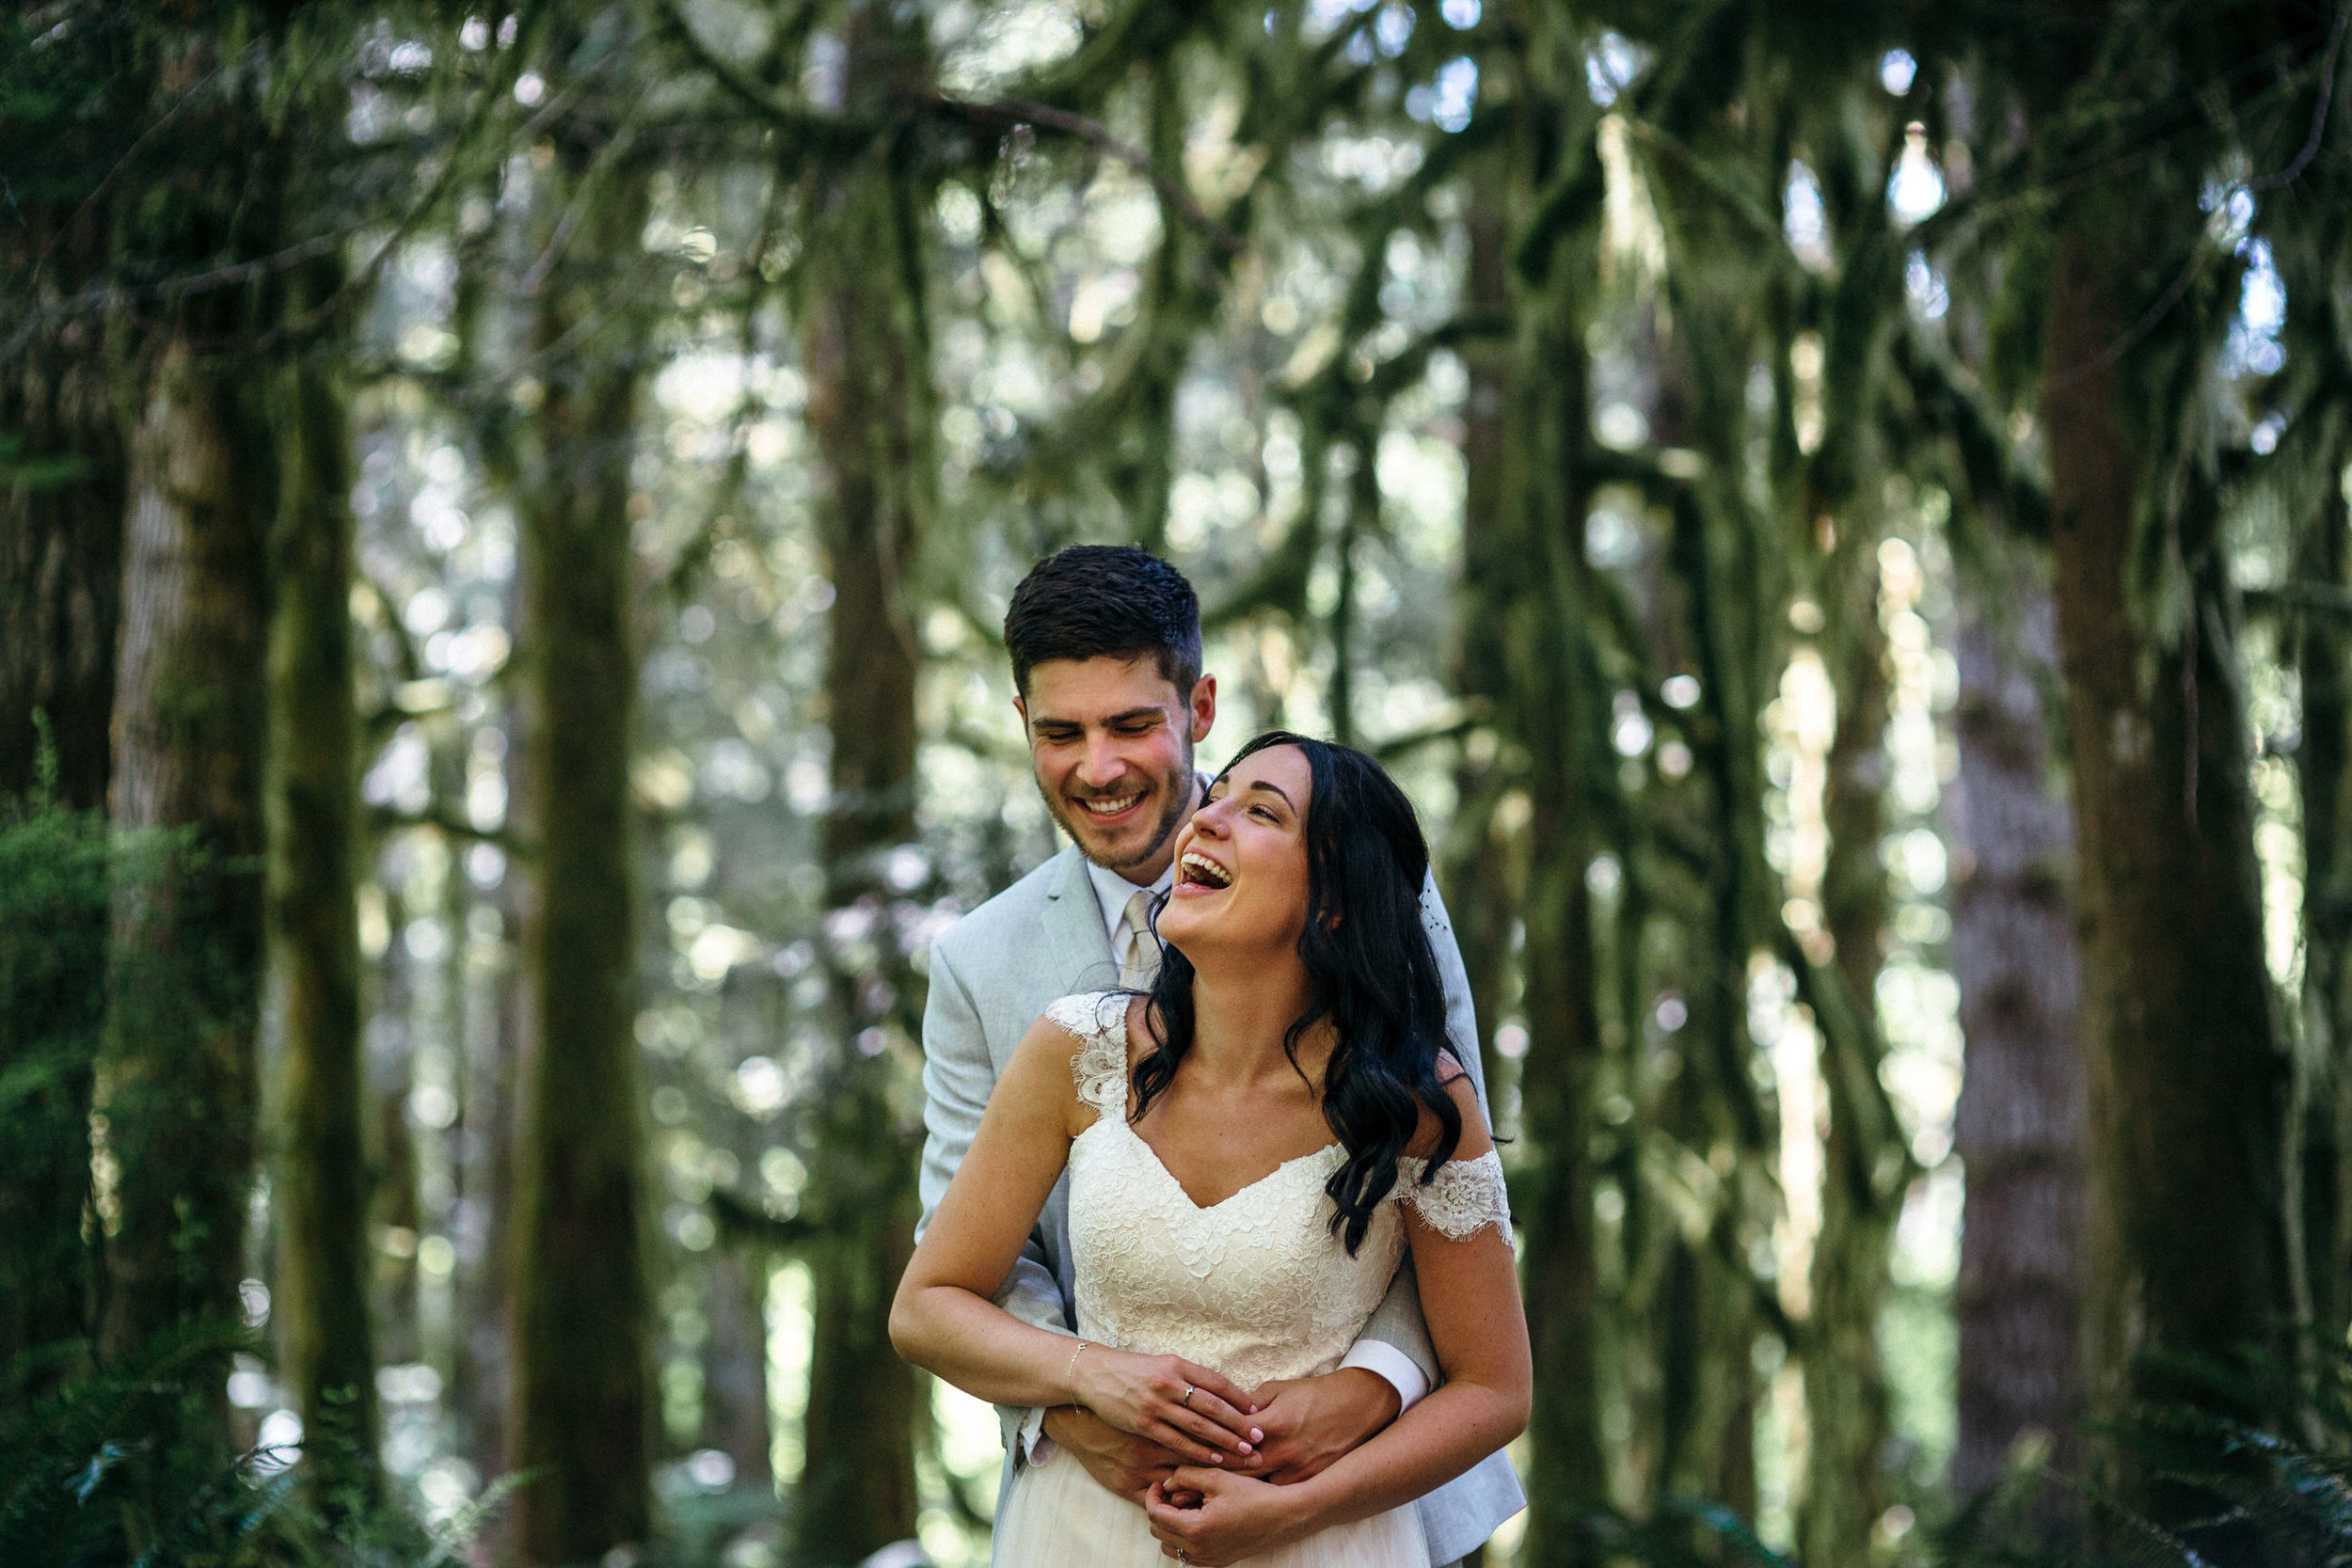 MT Hood Wildwood elopement wedding oregon portland photography0080.JPG